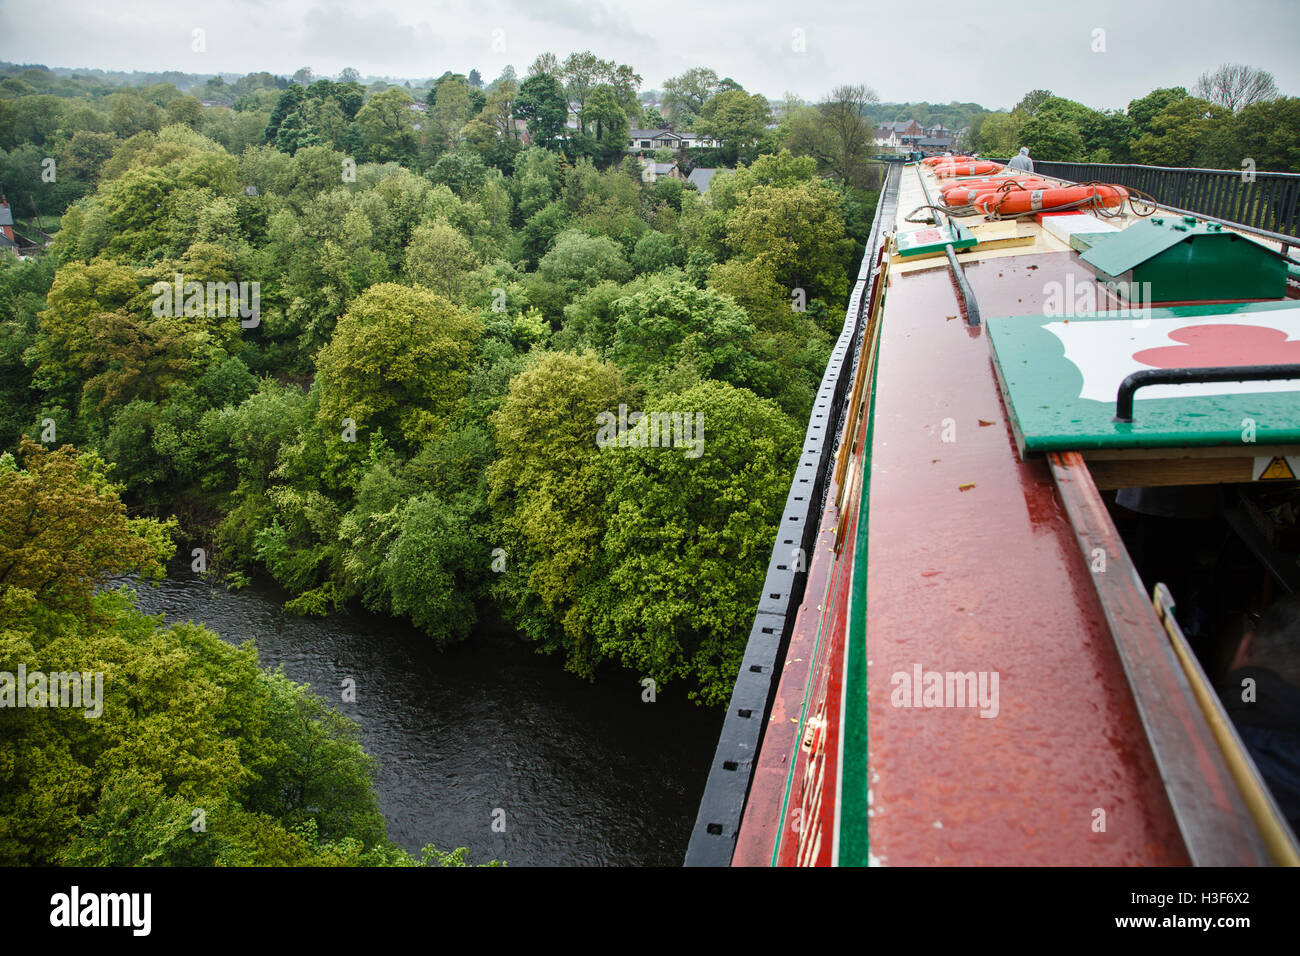 View from narrowboat going across the Pontcysyllte Aqueduct, Denbighshire, Wales - Stock Image